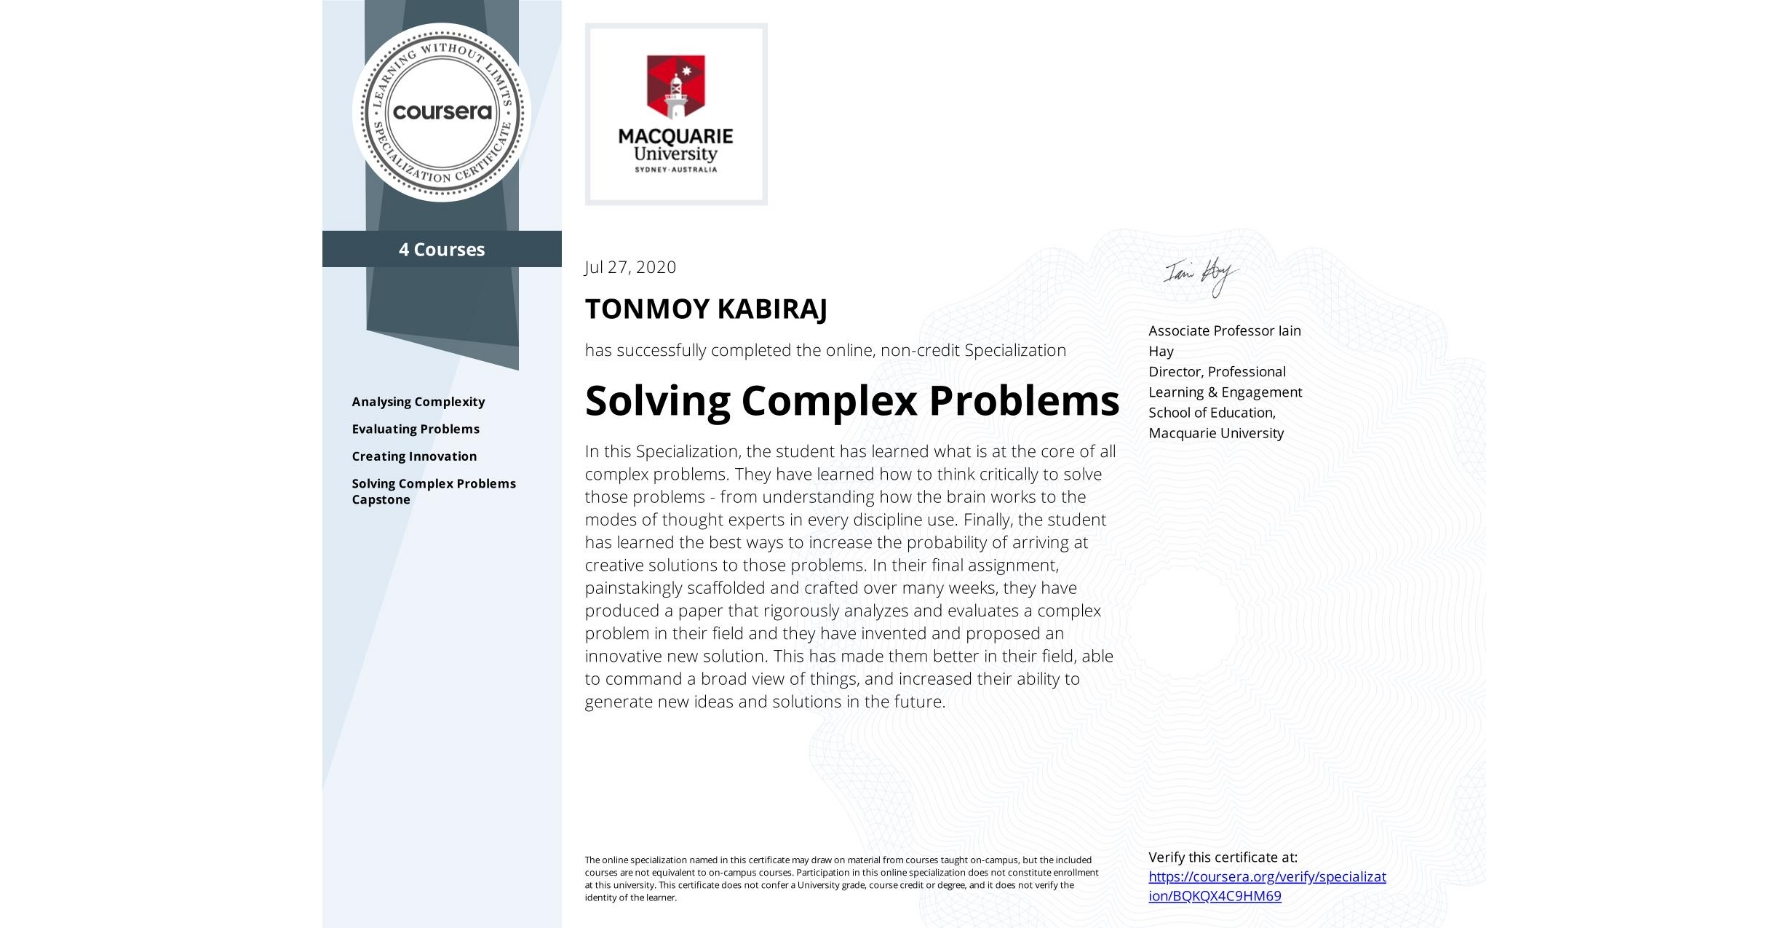 View certificate for TONMOY KABIRAJ, Solving Complex Problems, offered through Coursera. In this Specialization, the student has learned what is at the core of all complex problems. They have learned how to think critically to solve those problems - from understanding how the brain works to the modes of thought experts in every discipline use. Finally, the student has learned the best ways to increase the probability of arriving at creative solutions to those problems. In their final assignment, painstakingly scaffolded and crafted over many weeks, they have produced a paper that rigorously analyzes and evaluates a complex problem in their field and they have invented and proposed an innovative new solution. This has made them better in their field, able to command a broad view of things, and increased their ability to generate new ideas and solutions in the future.